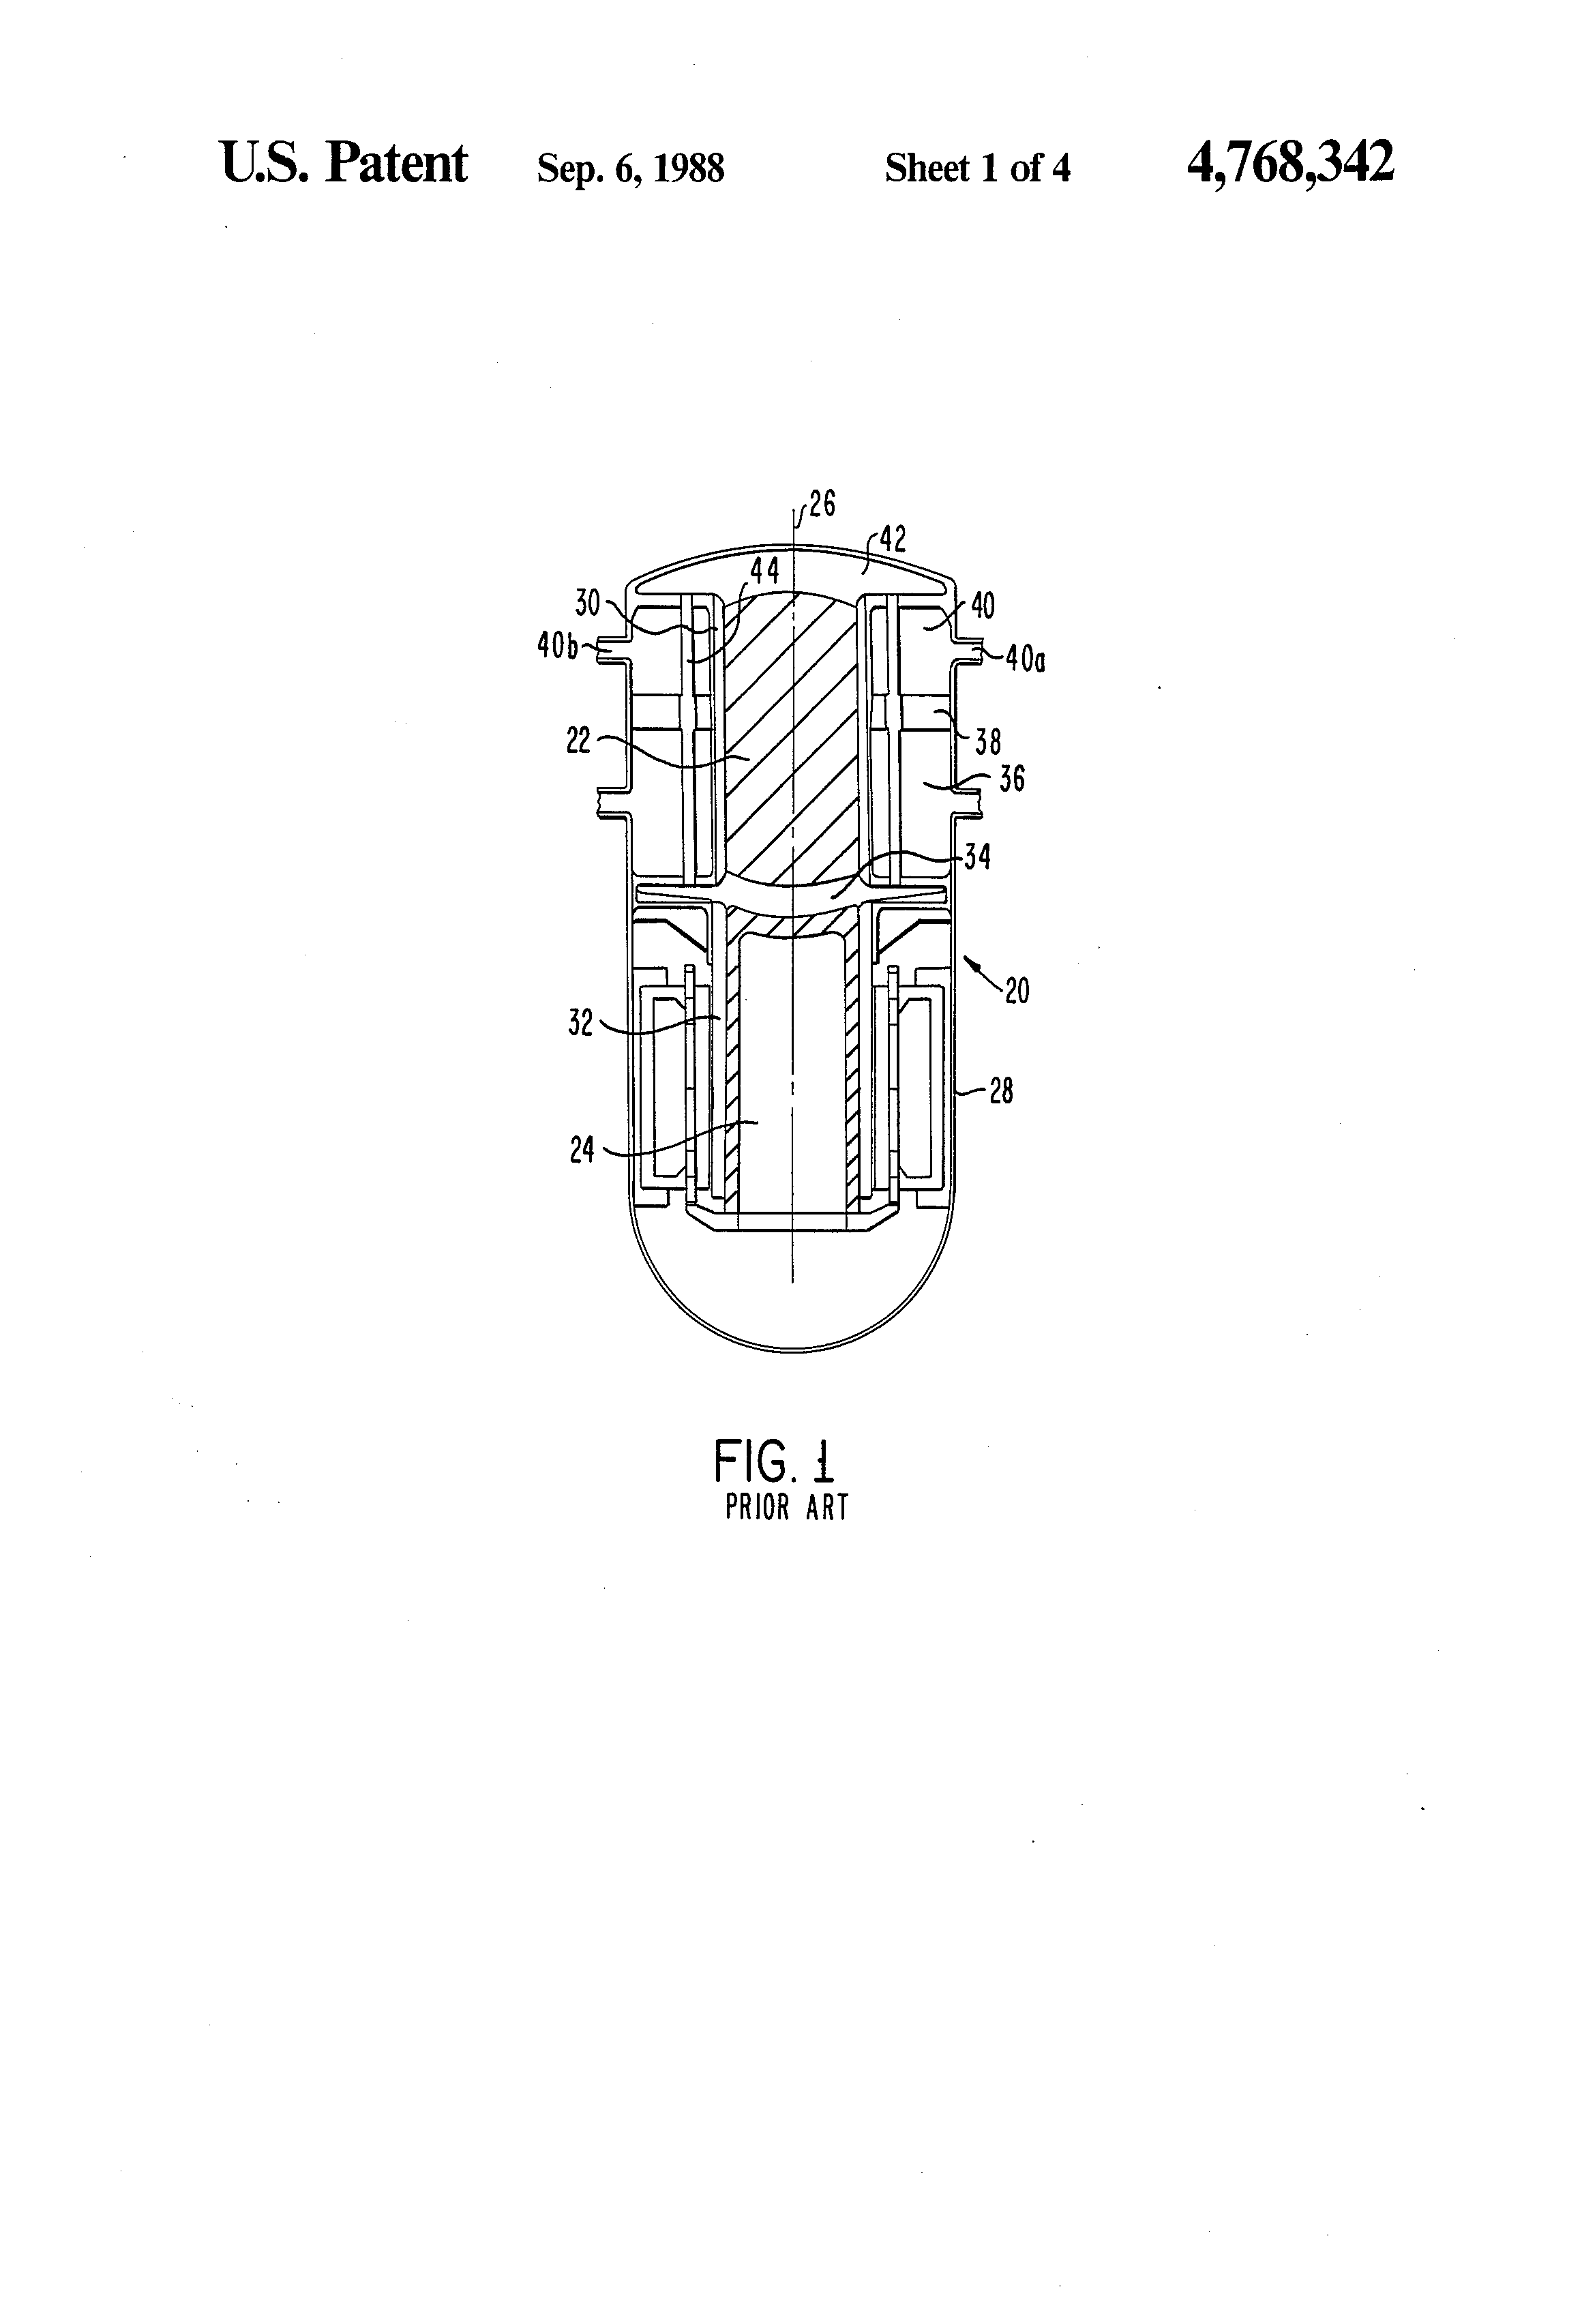 Heater Head For A Stirling Engine Us 4768342 Patent Drawing Diagram